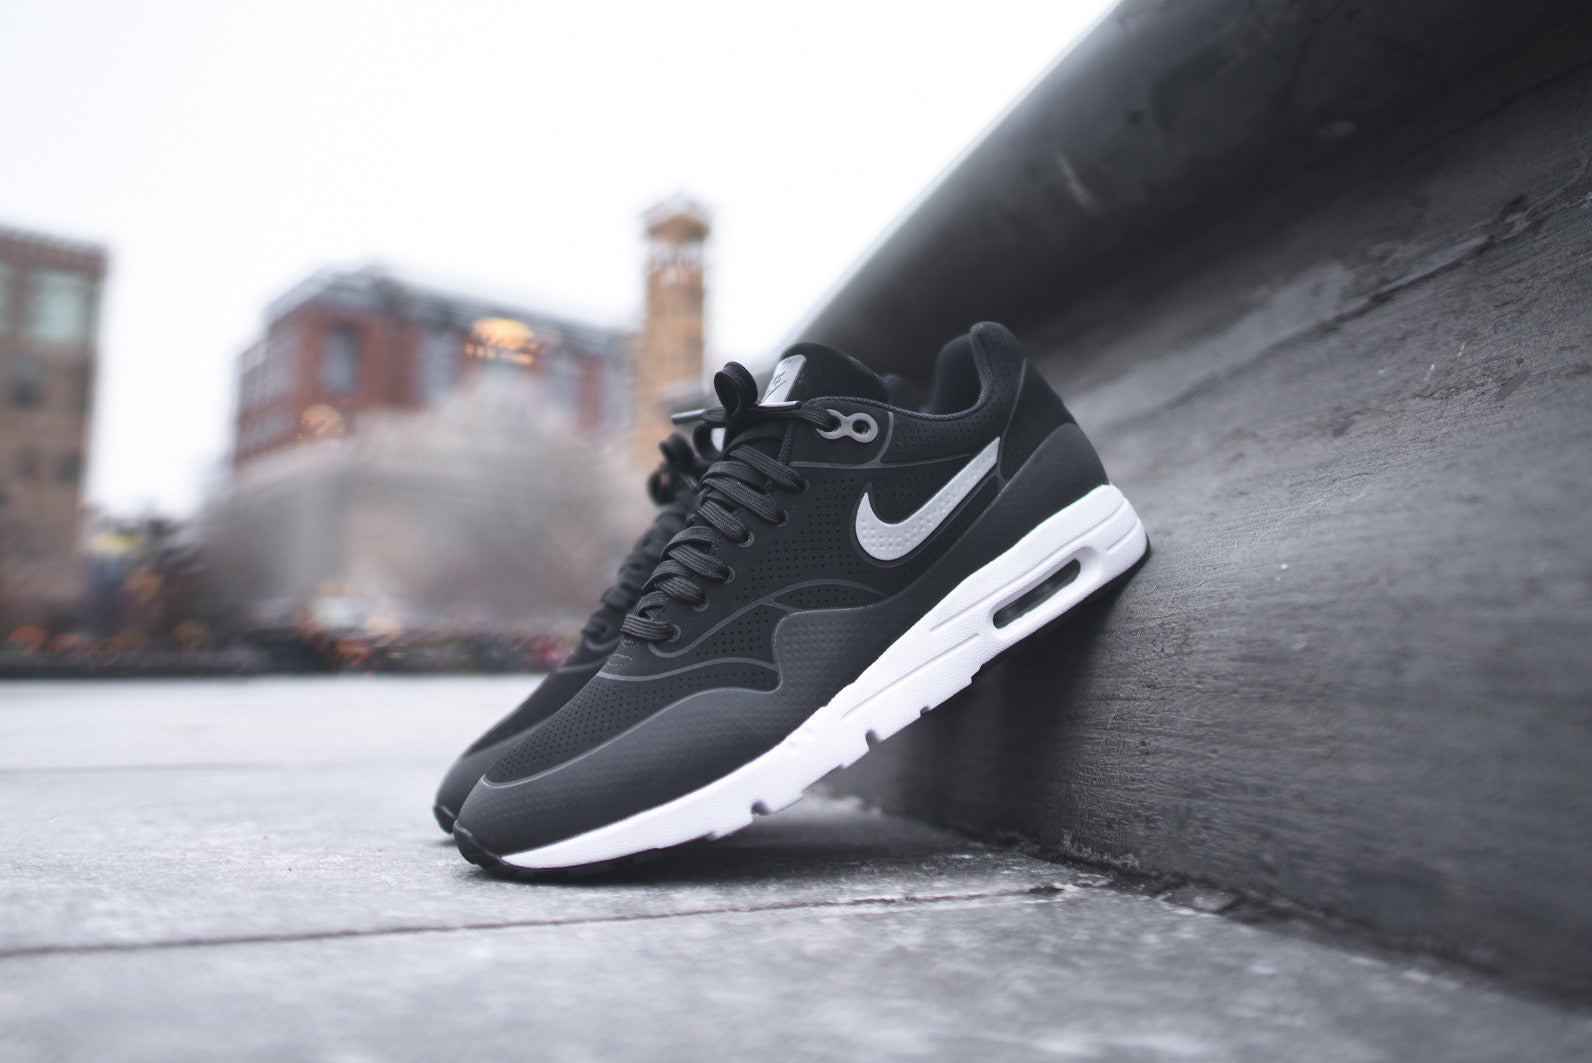 Nike WMNS Air Max 1 Ultra Moire - Black / Metallic Silver